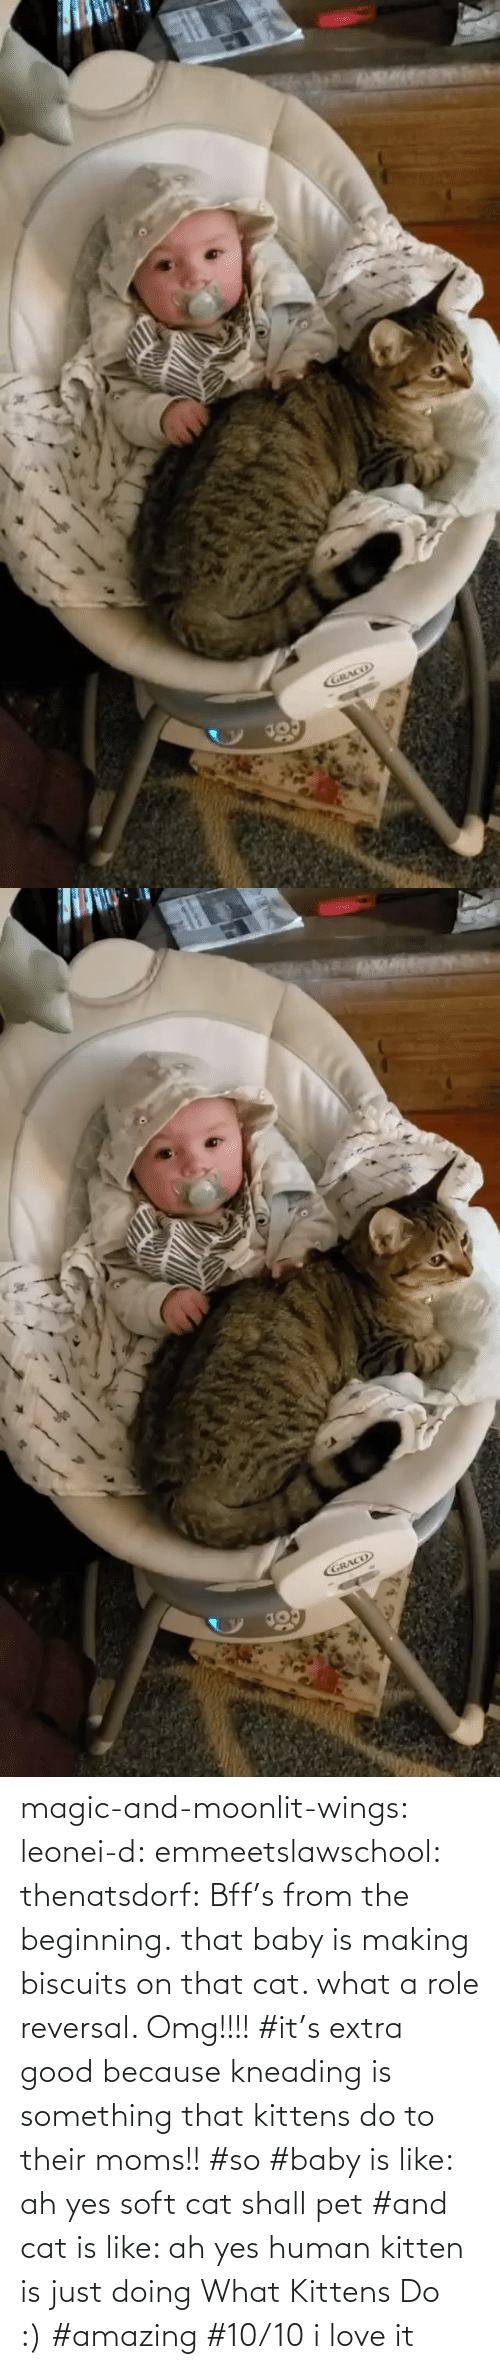 Doing: magic-and-moonlit-wings: leonei-d:  emmeetslawschool:  thenatsdorf: Bff's from the beginning. that baby is making biscuits on that cat. what a role reversal.    Omg!!!!     #it's extra good because kneading is something that kittens do to their moms!! #so #baby is like: ah yes soft cat shall pet #and cat is like: ah yes human kitten is just doing What Kittens Do :) #amazing #10/10 i love it